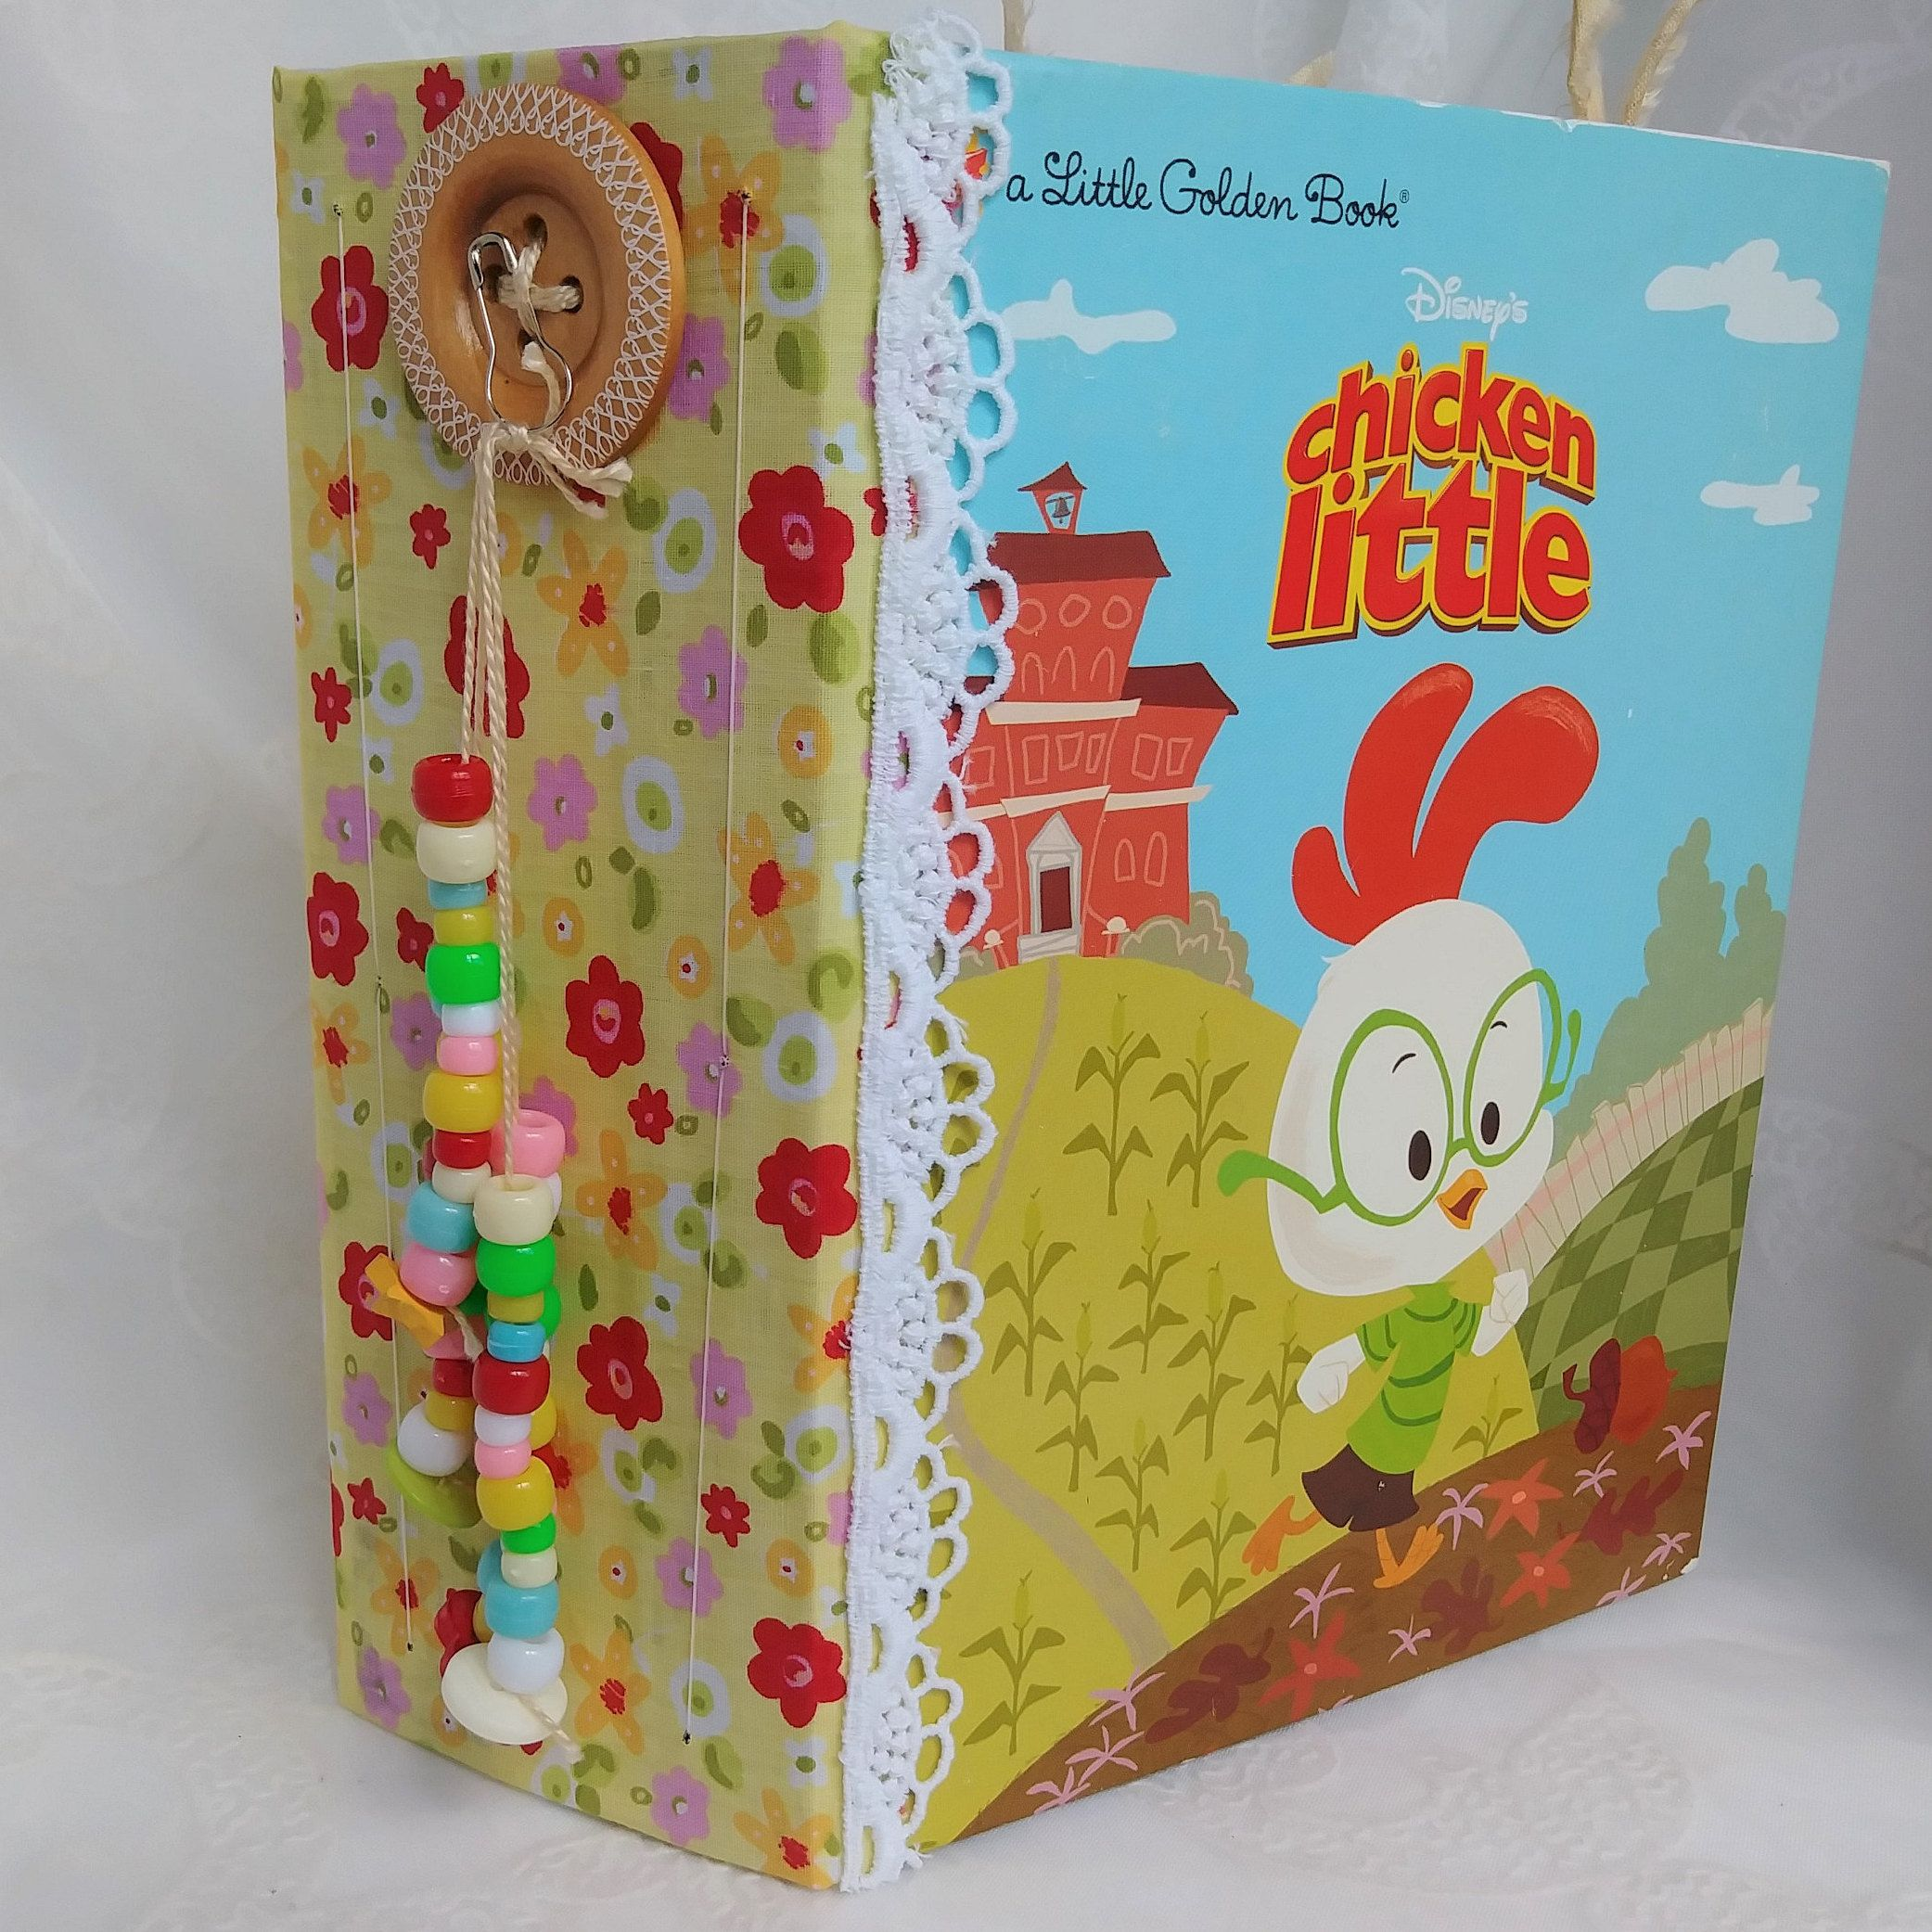 Pin By Ro-Ro George On A Little Golden Book Junk Journal